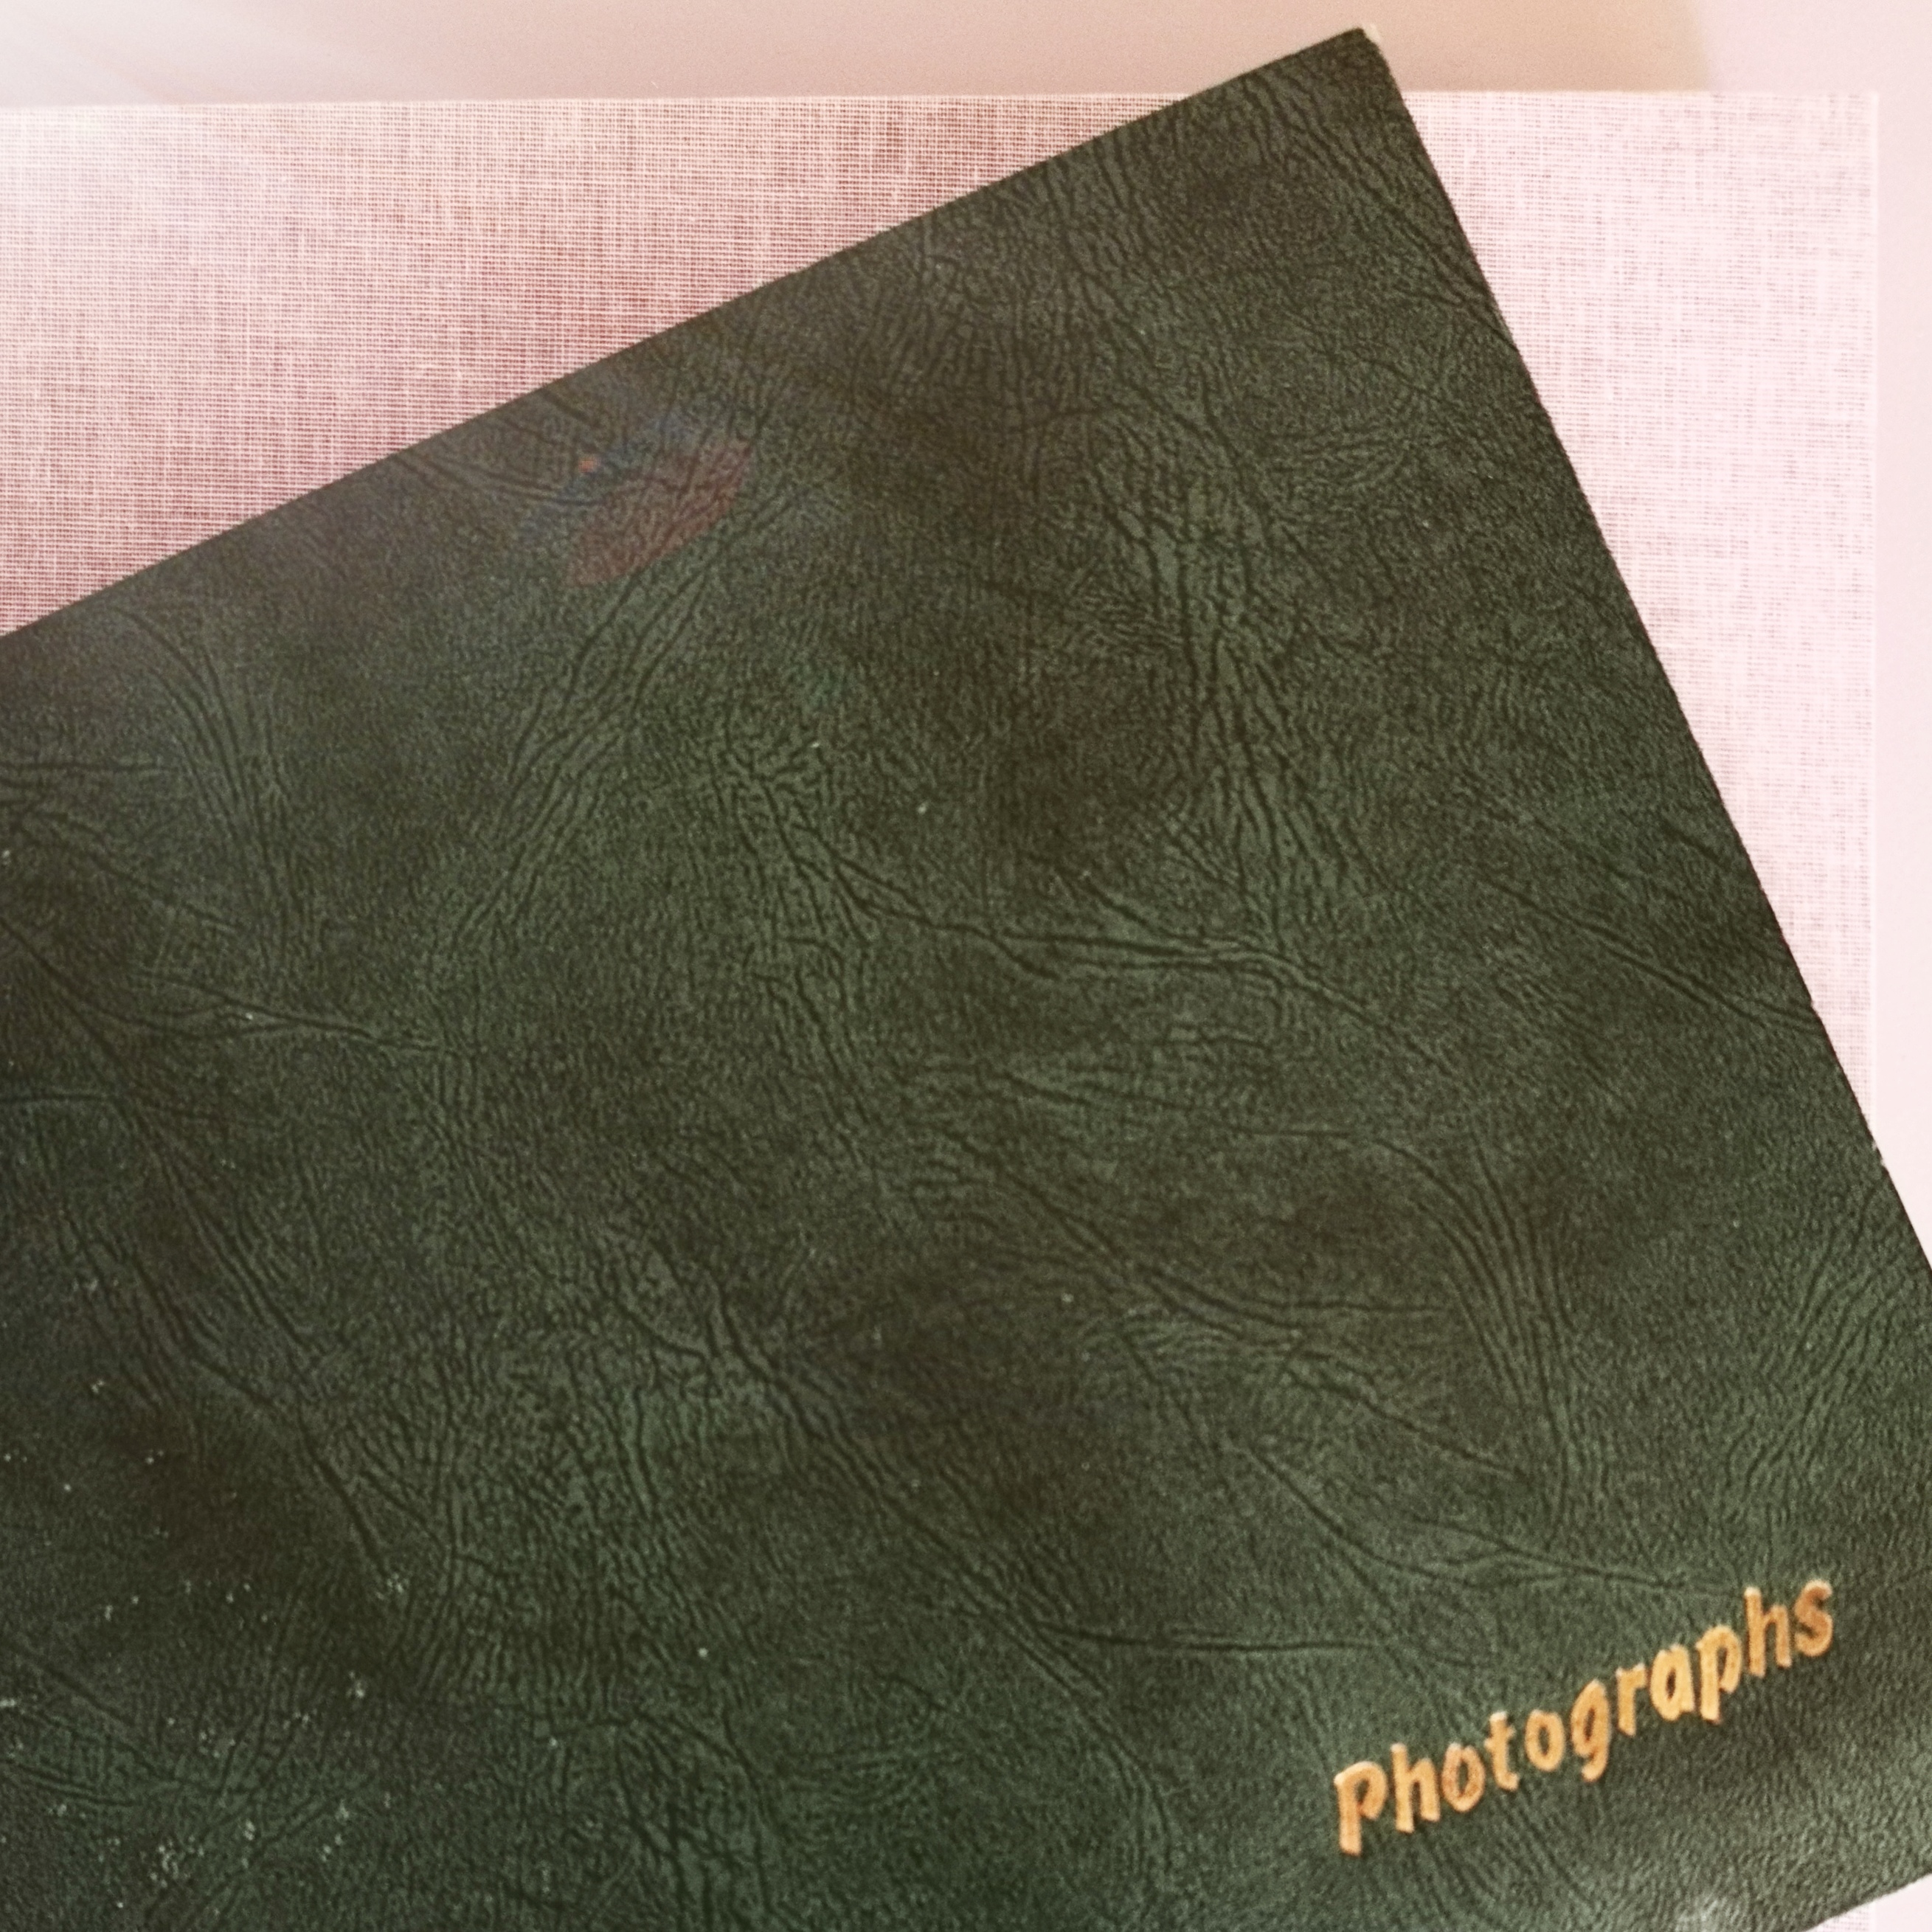 Image of an old photograph albums, illustrating the album scanning service on offer.